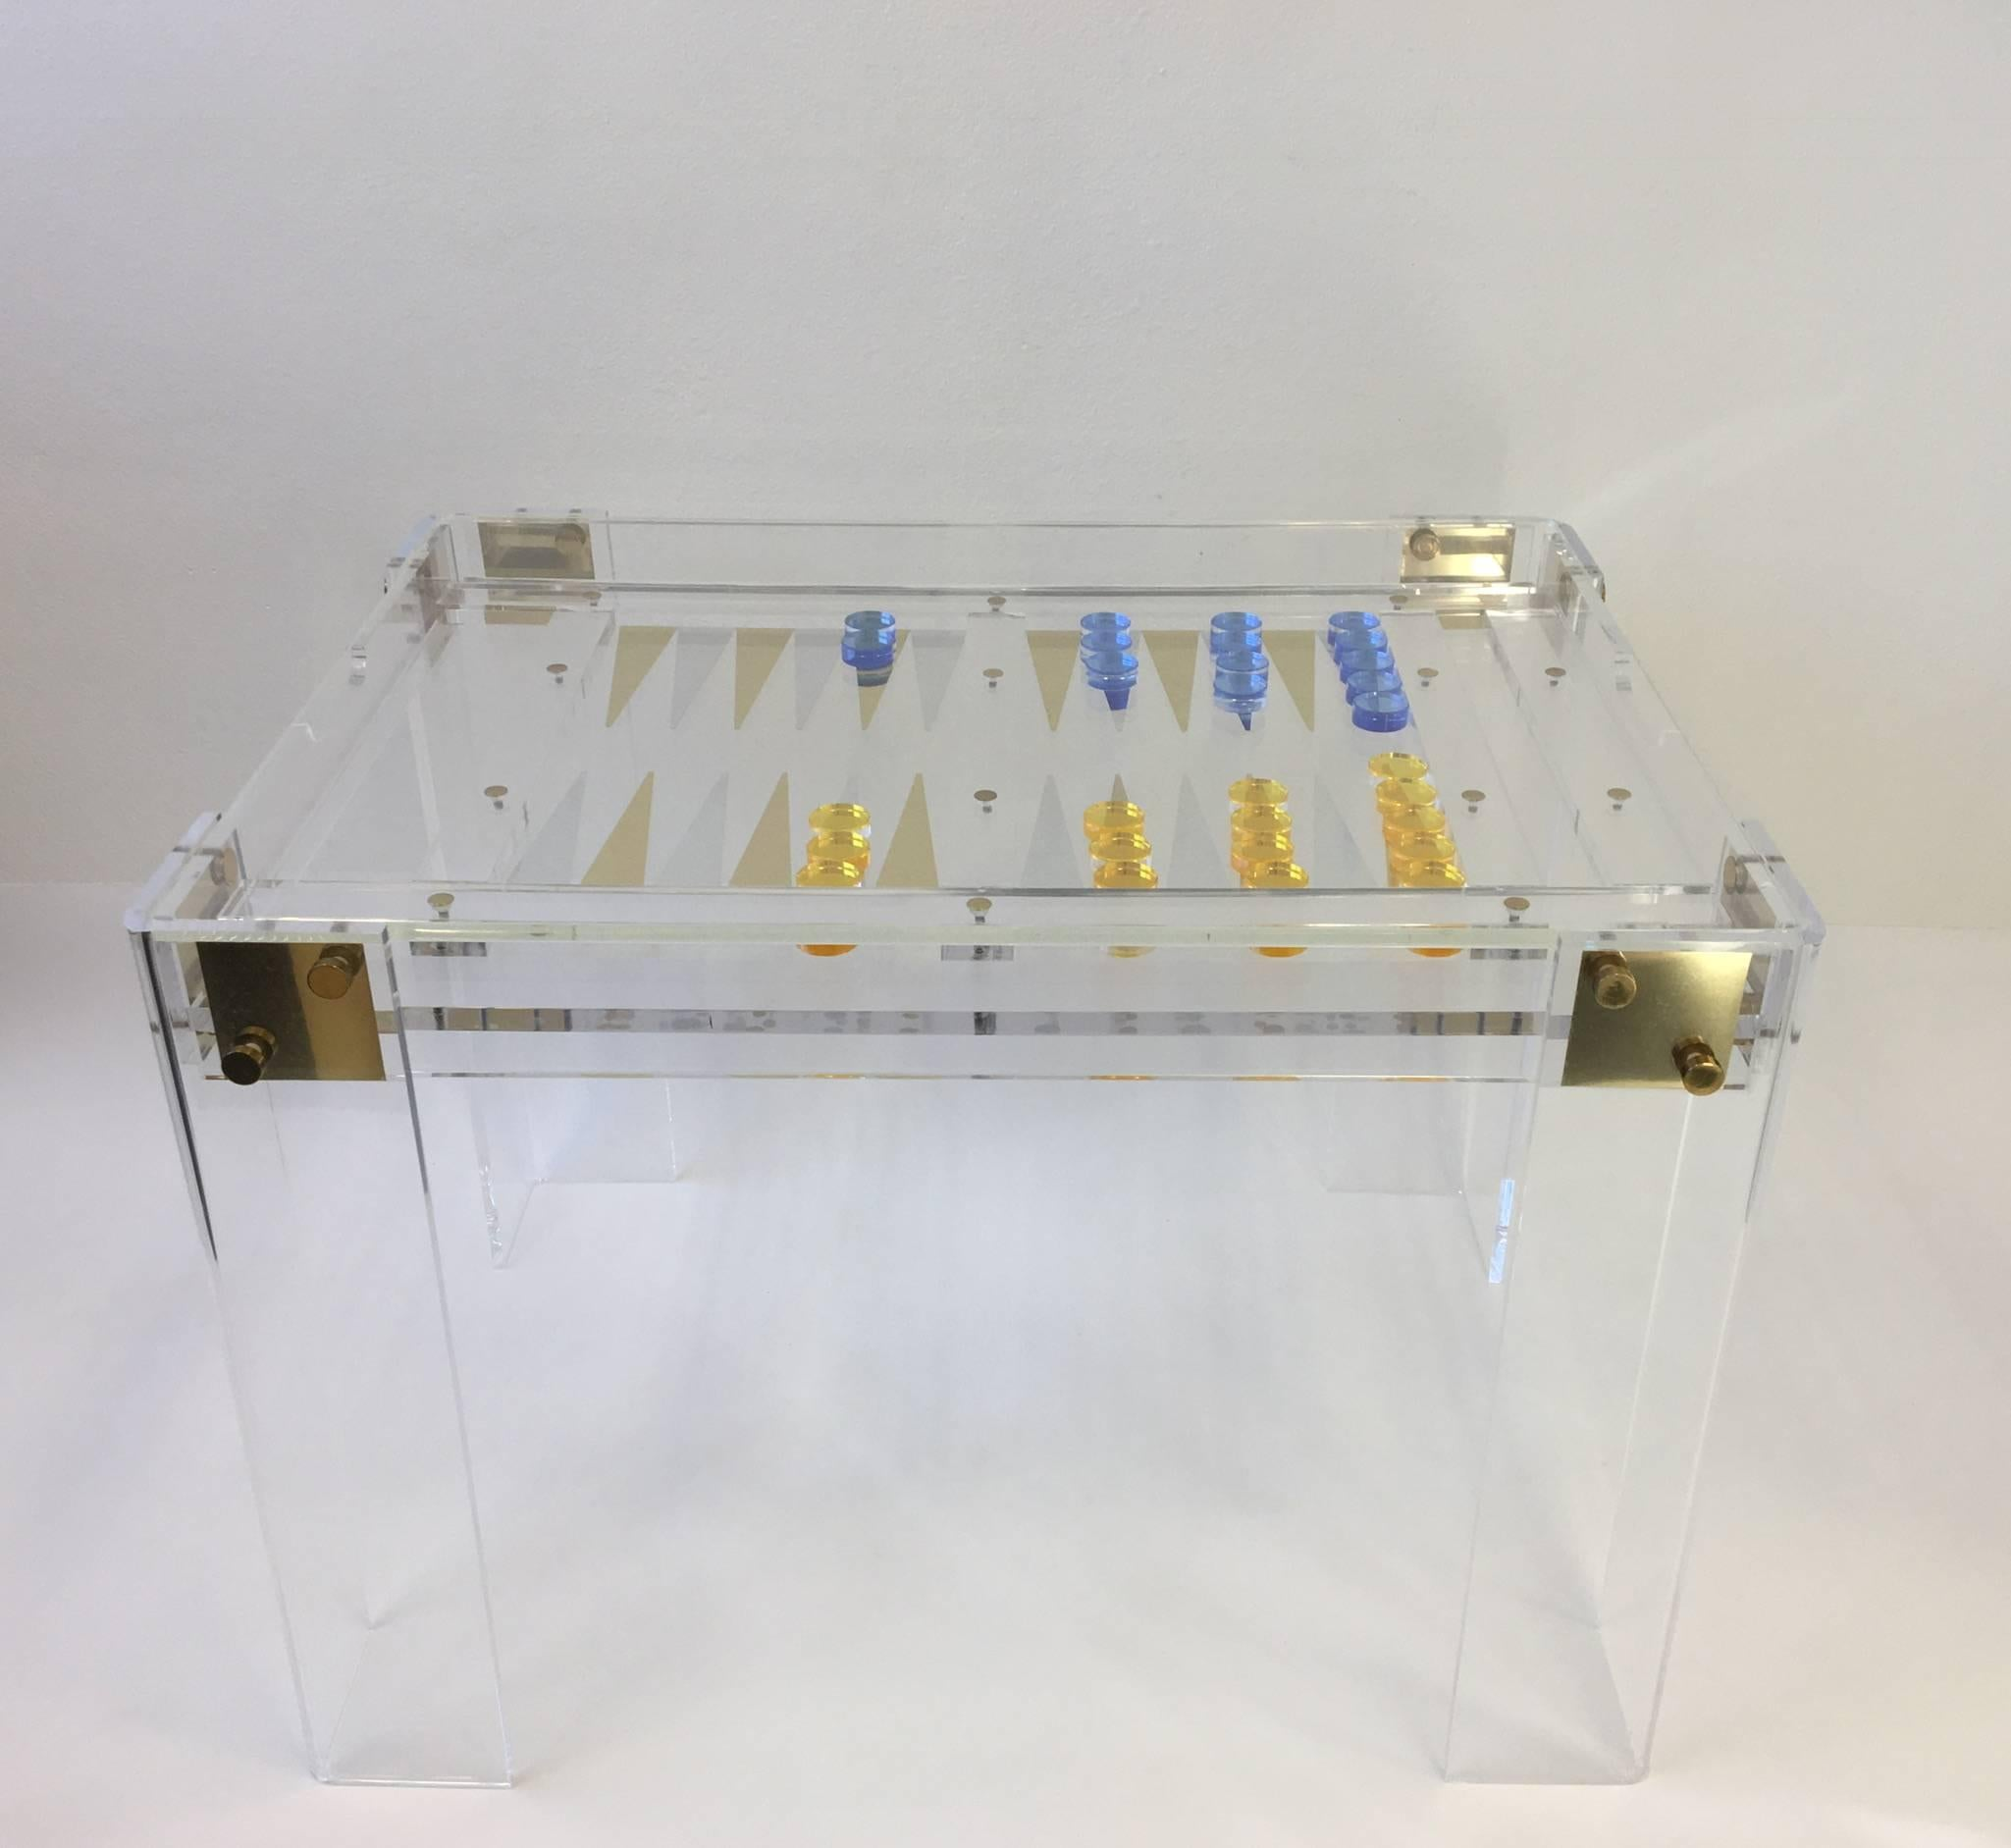 A Glamorous Clear Acrylic With Brass Hardware Designed By Renowned Designer  Charles Hollis Jones In The